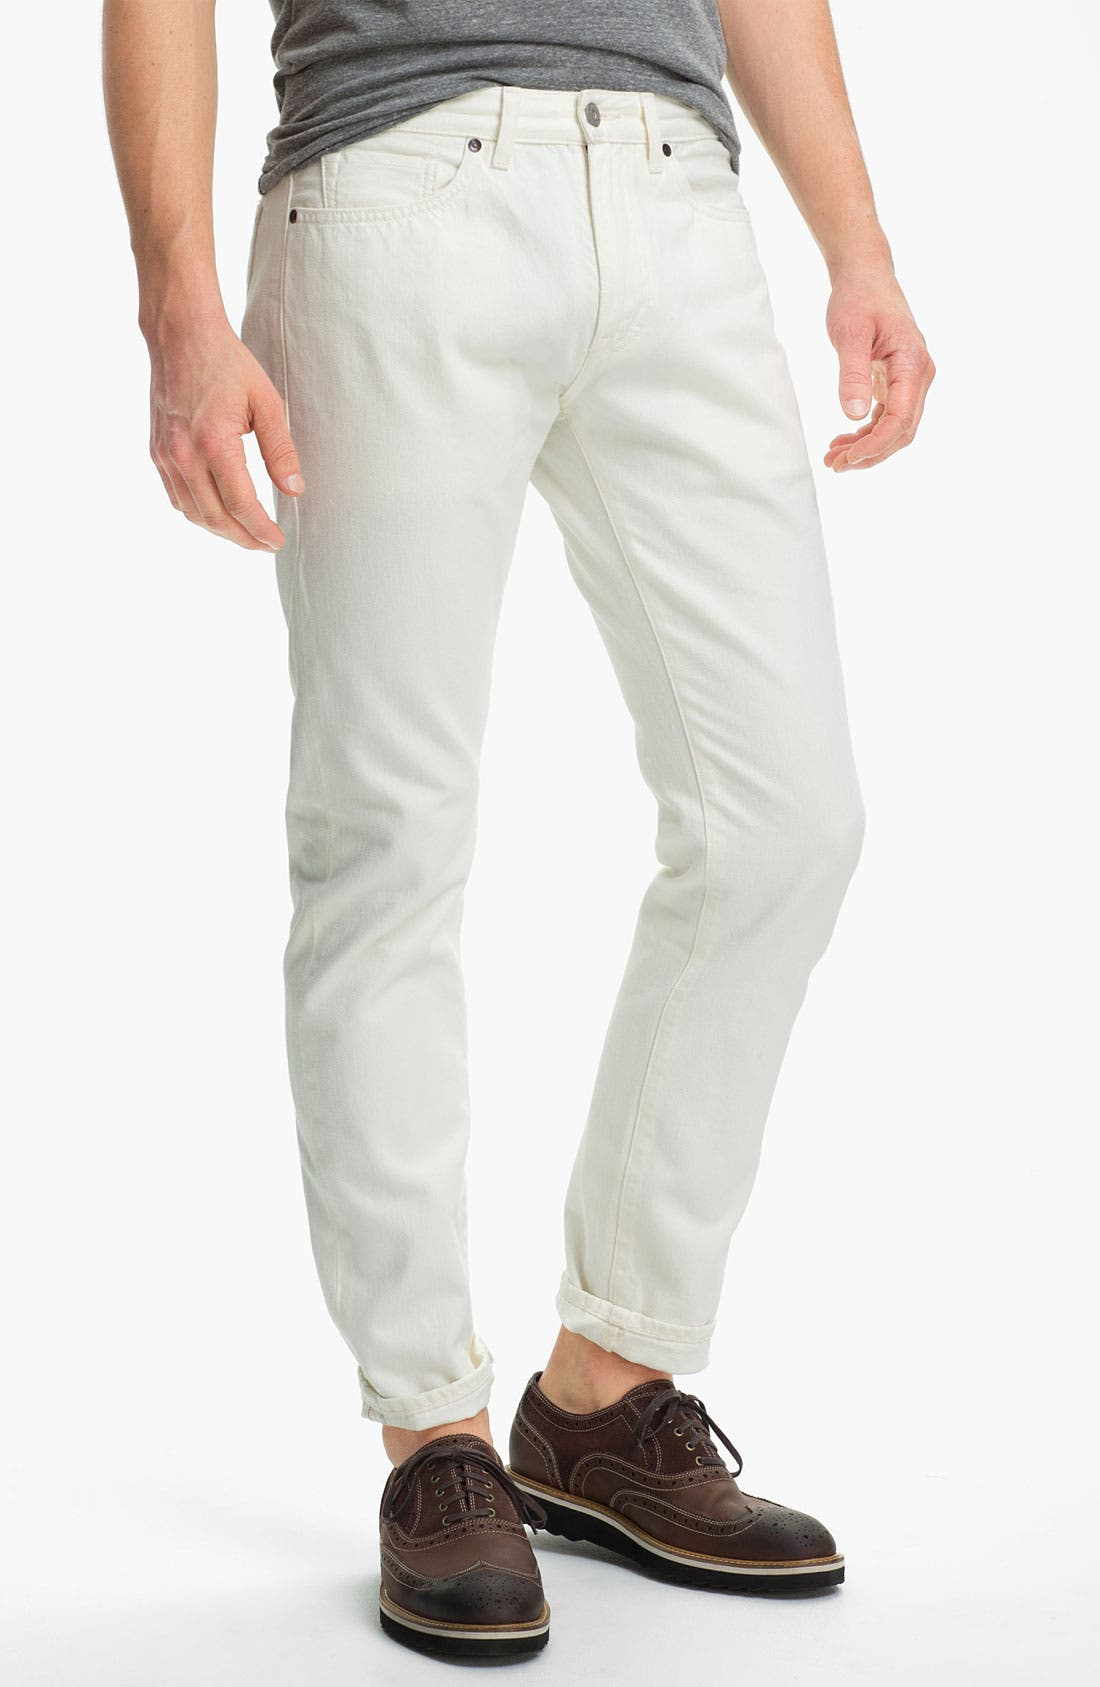 Alternate Image 1 Selected - Levi's® Made & Crafted™ Slim Fit Jeans (White)